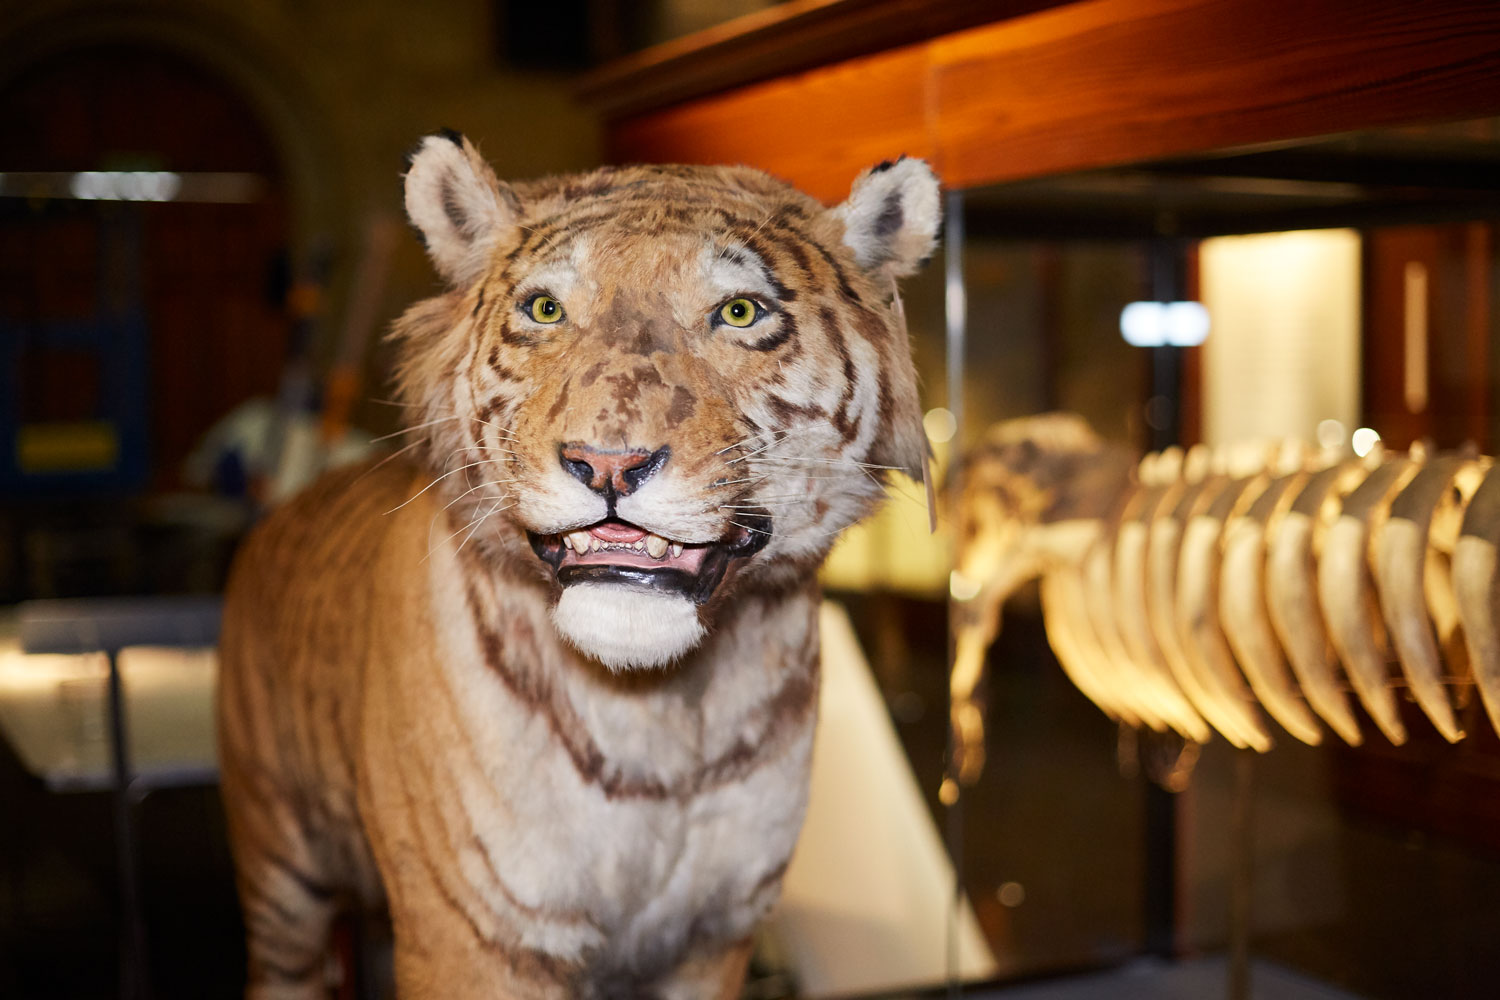 The tiger is displayed in the Natural History Museum exhibit as part of the Fantastic Beasts: The Wonder of Nature exhibit.